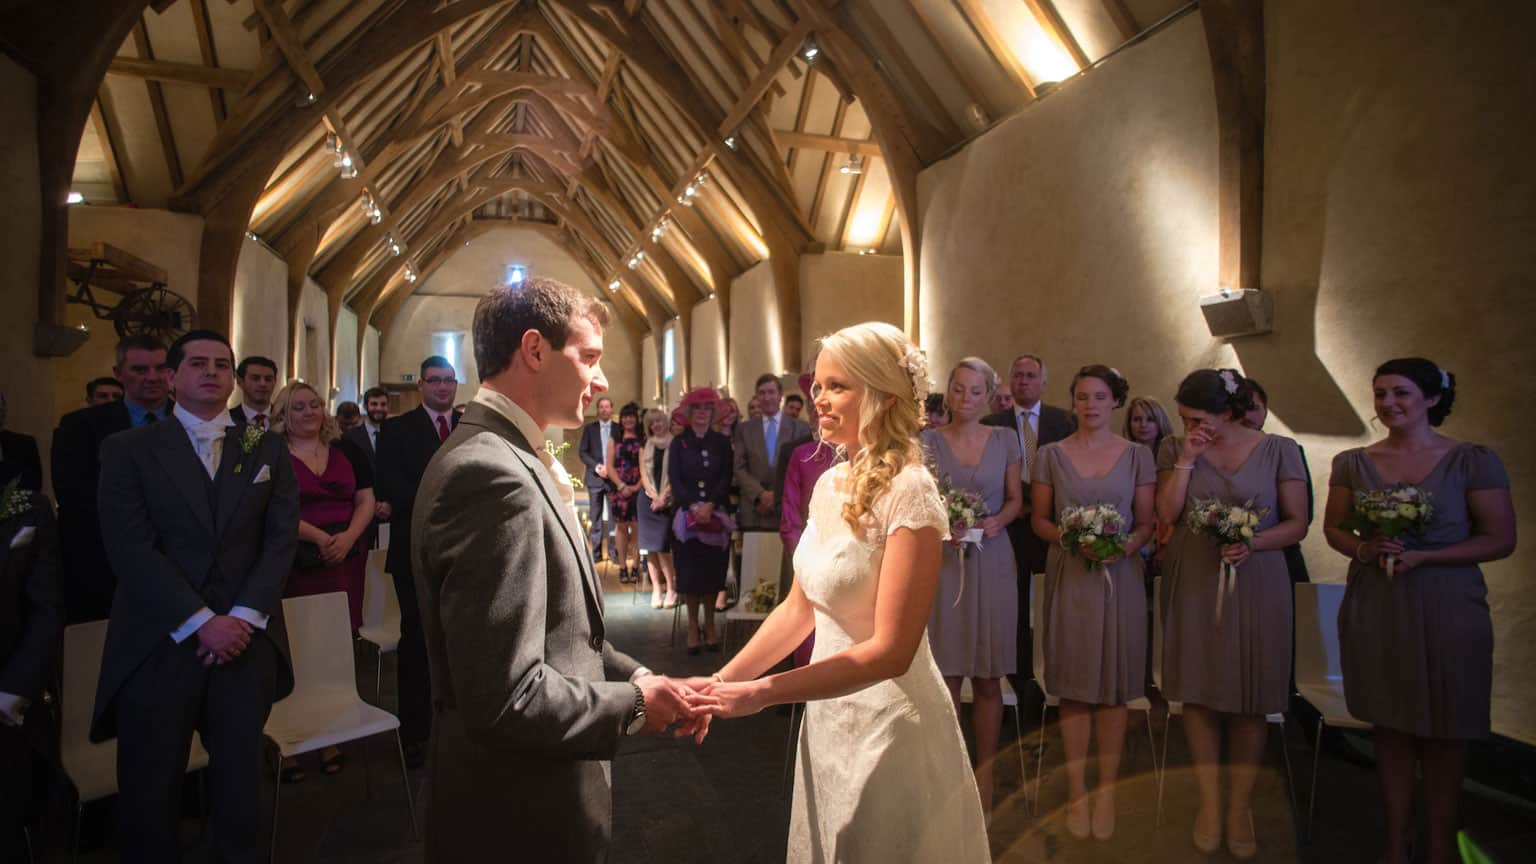 bride and groom, marriage ceremony, The Great Barn weddings